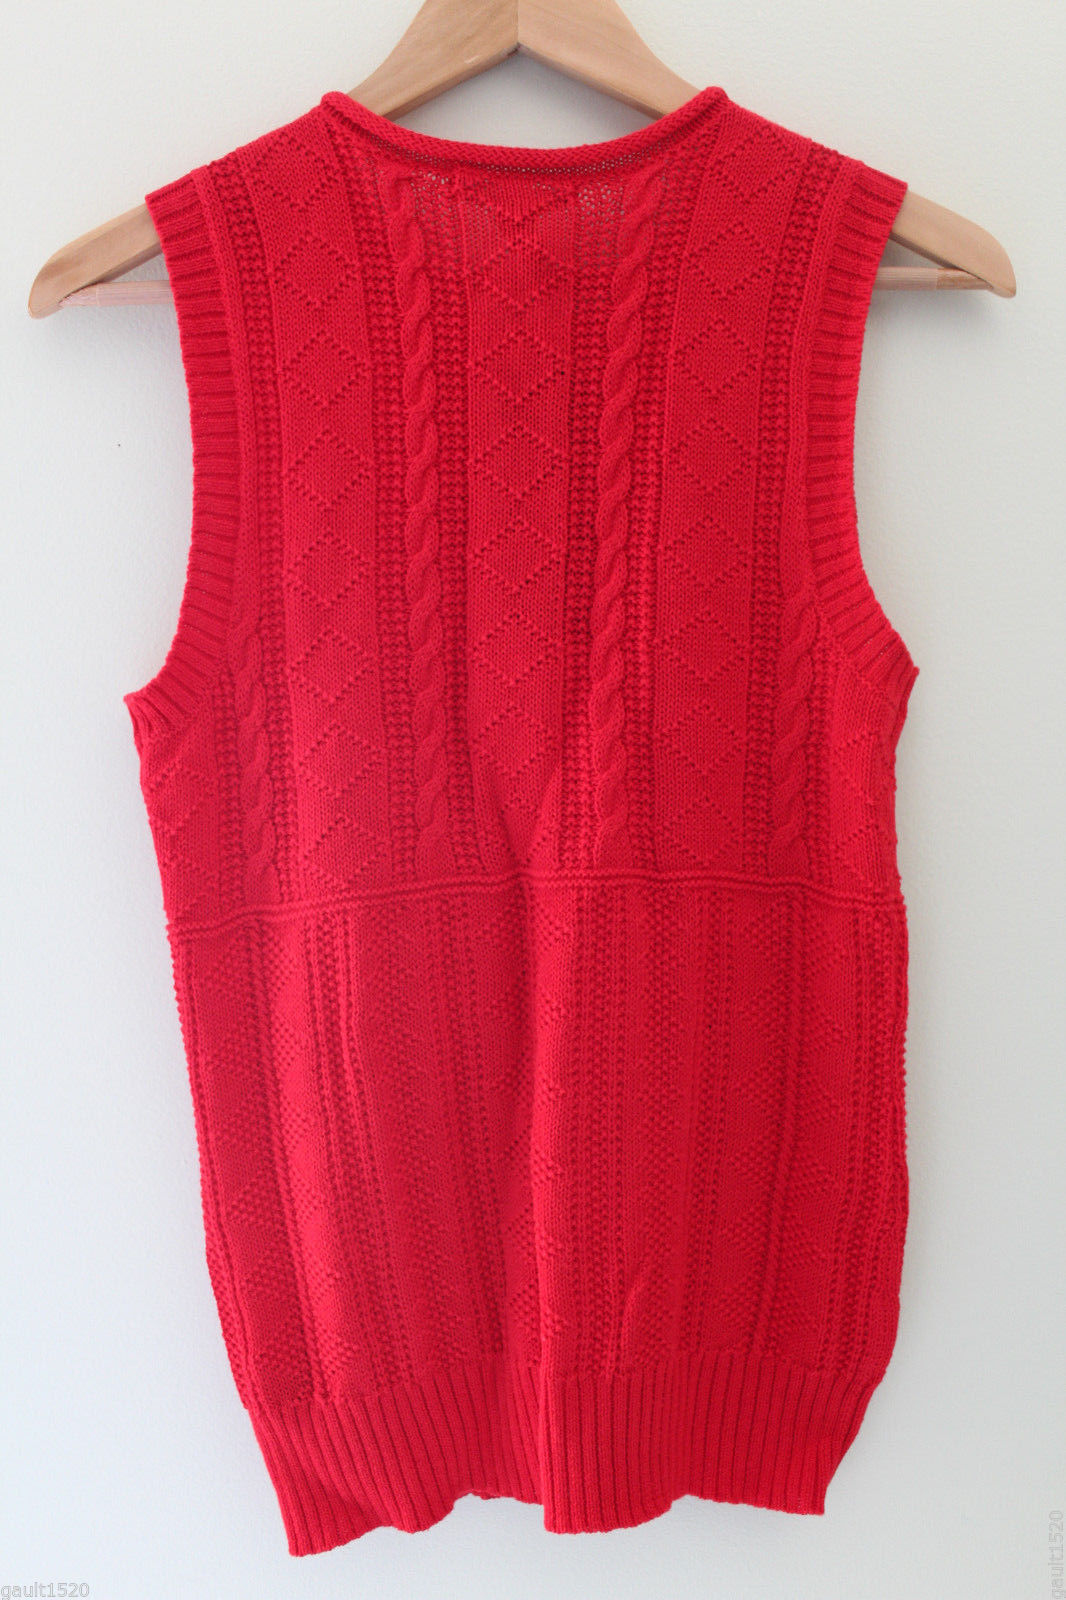 NWT LAUREN Ralph Lauren Red Linen Cotton Knit Sleeveless Sweater Vest M $100 image 6